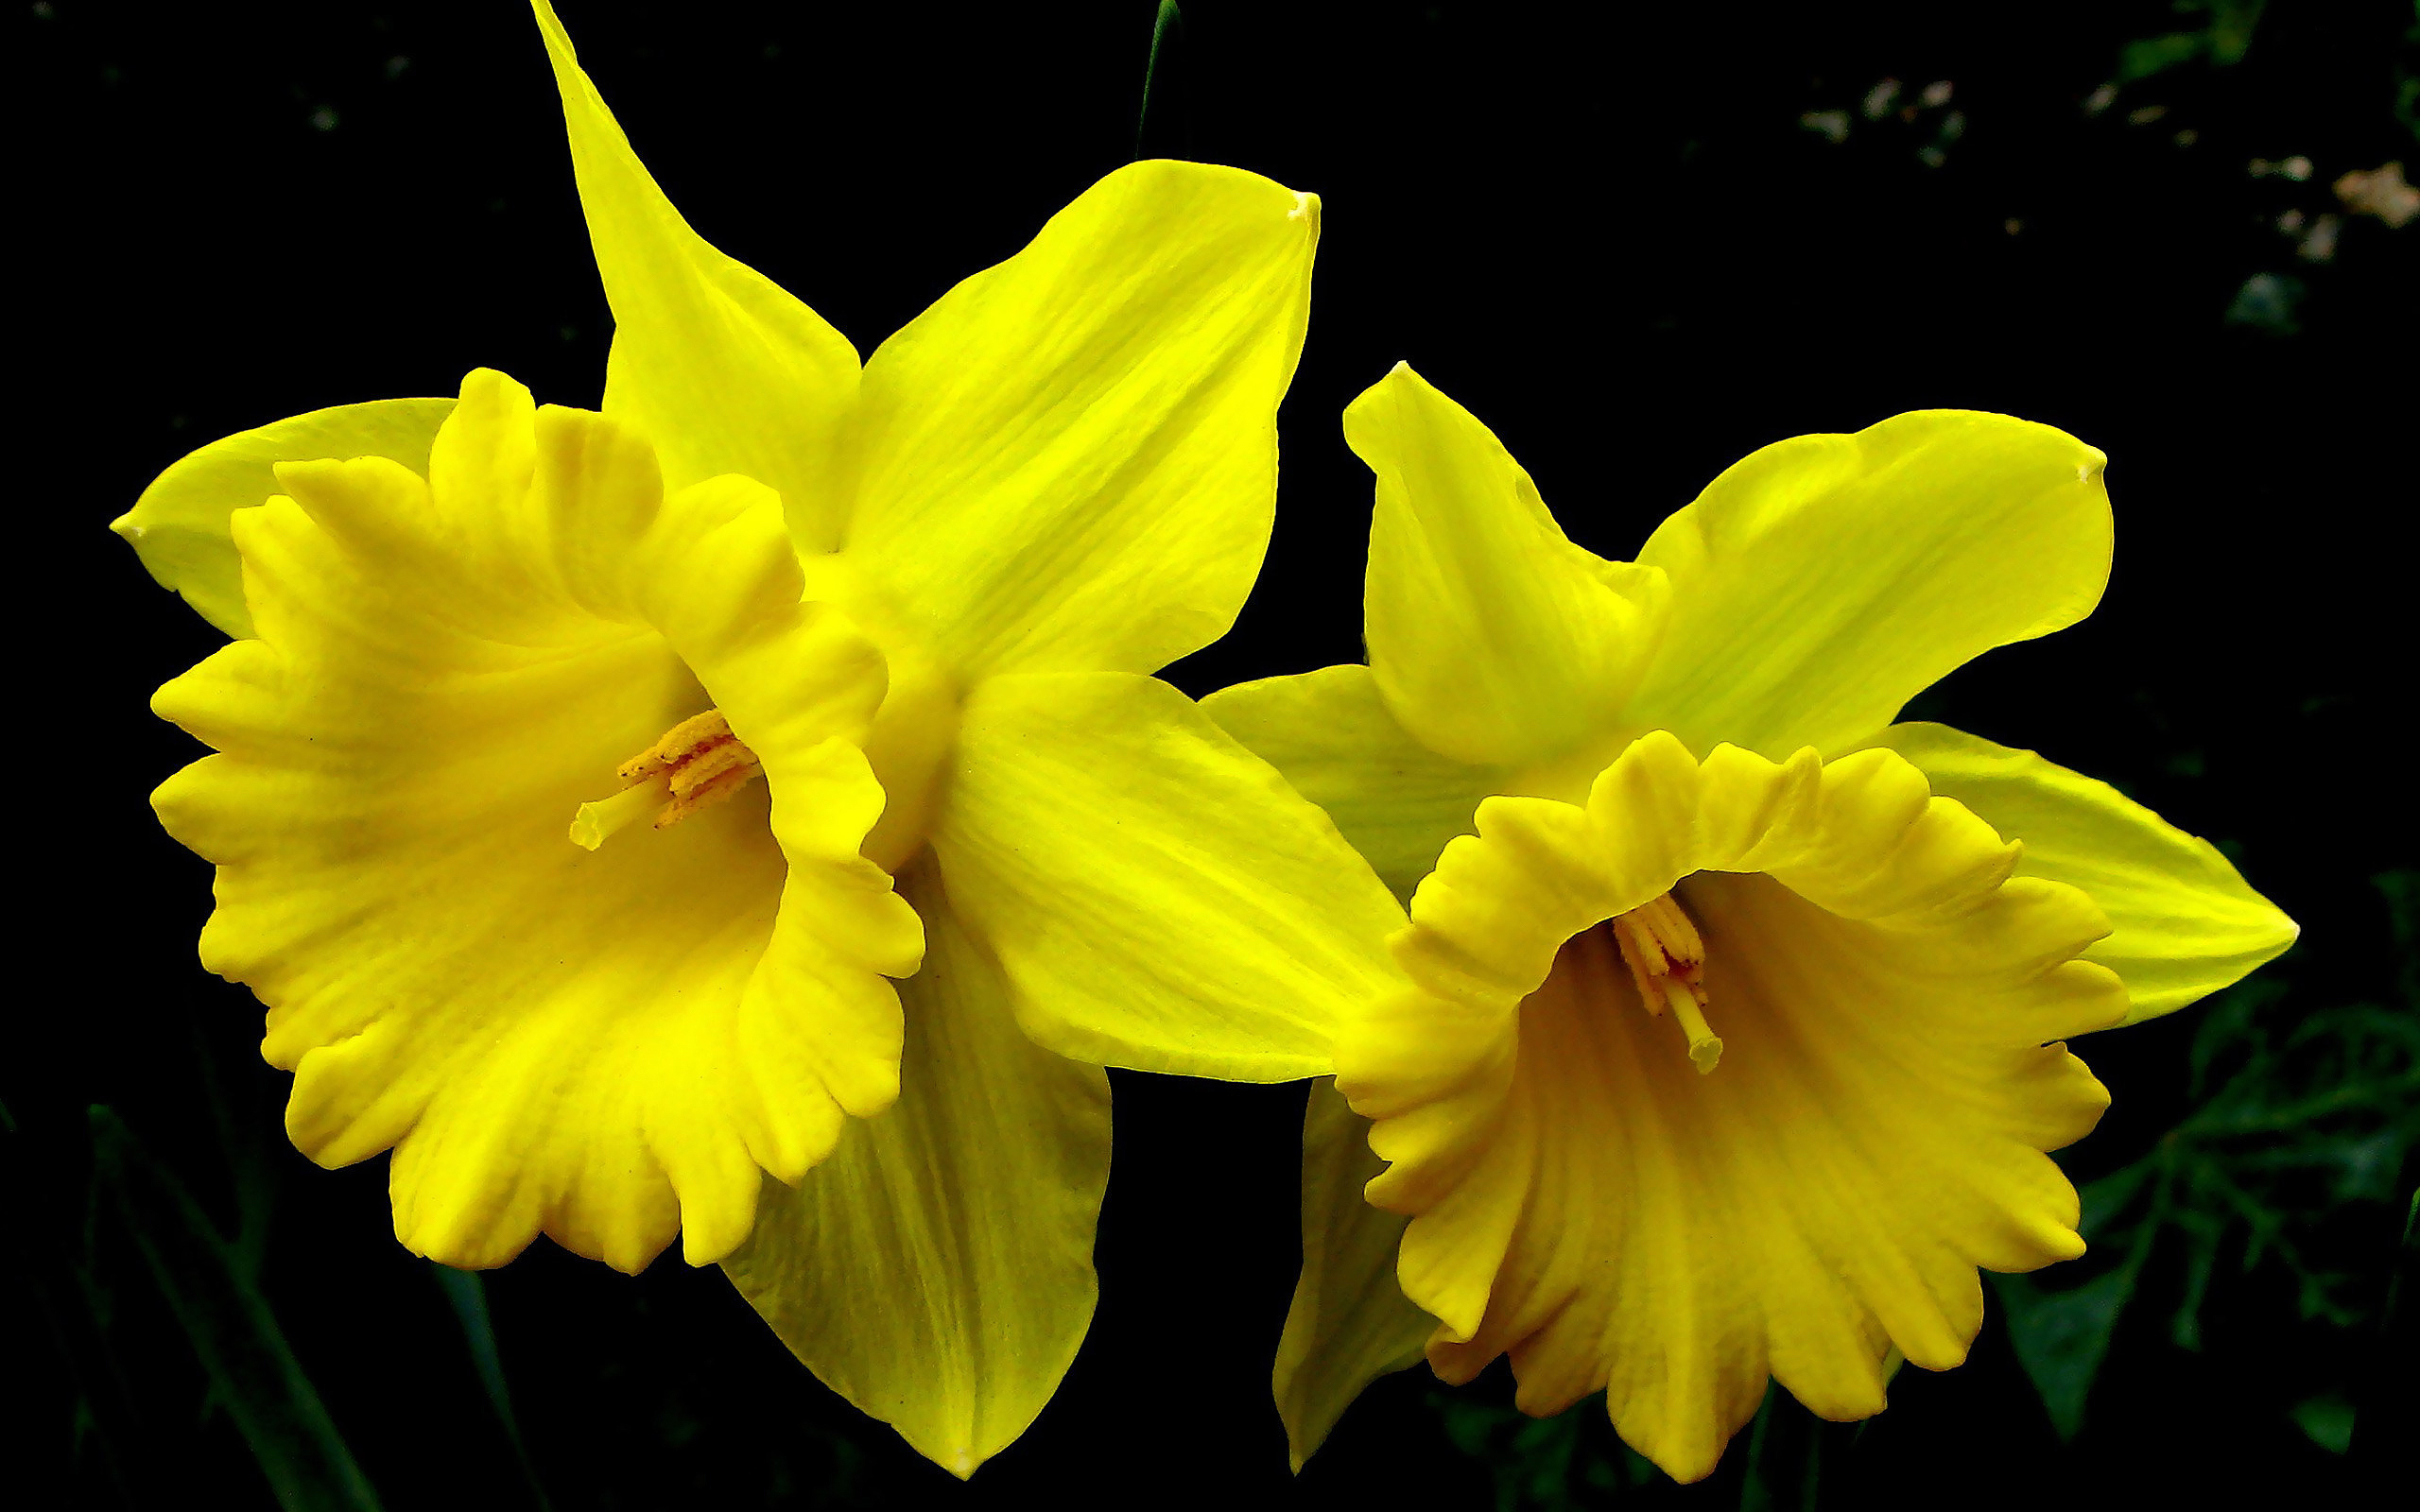 Yellow Daffodils Wallpapers Pictures Photos Images 1037